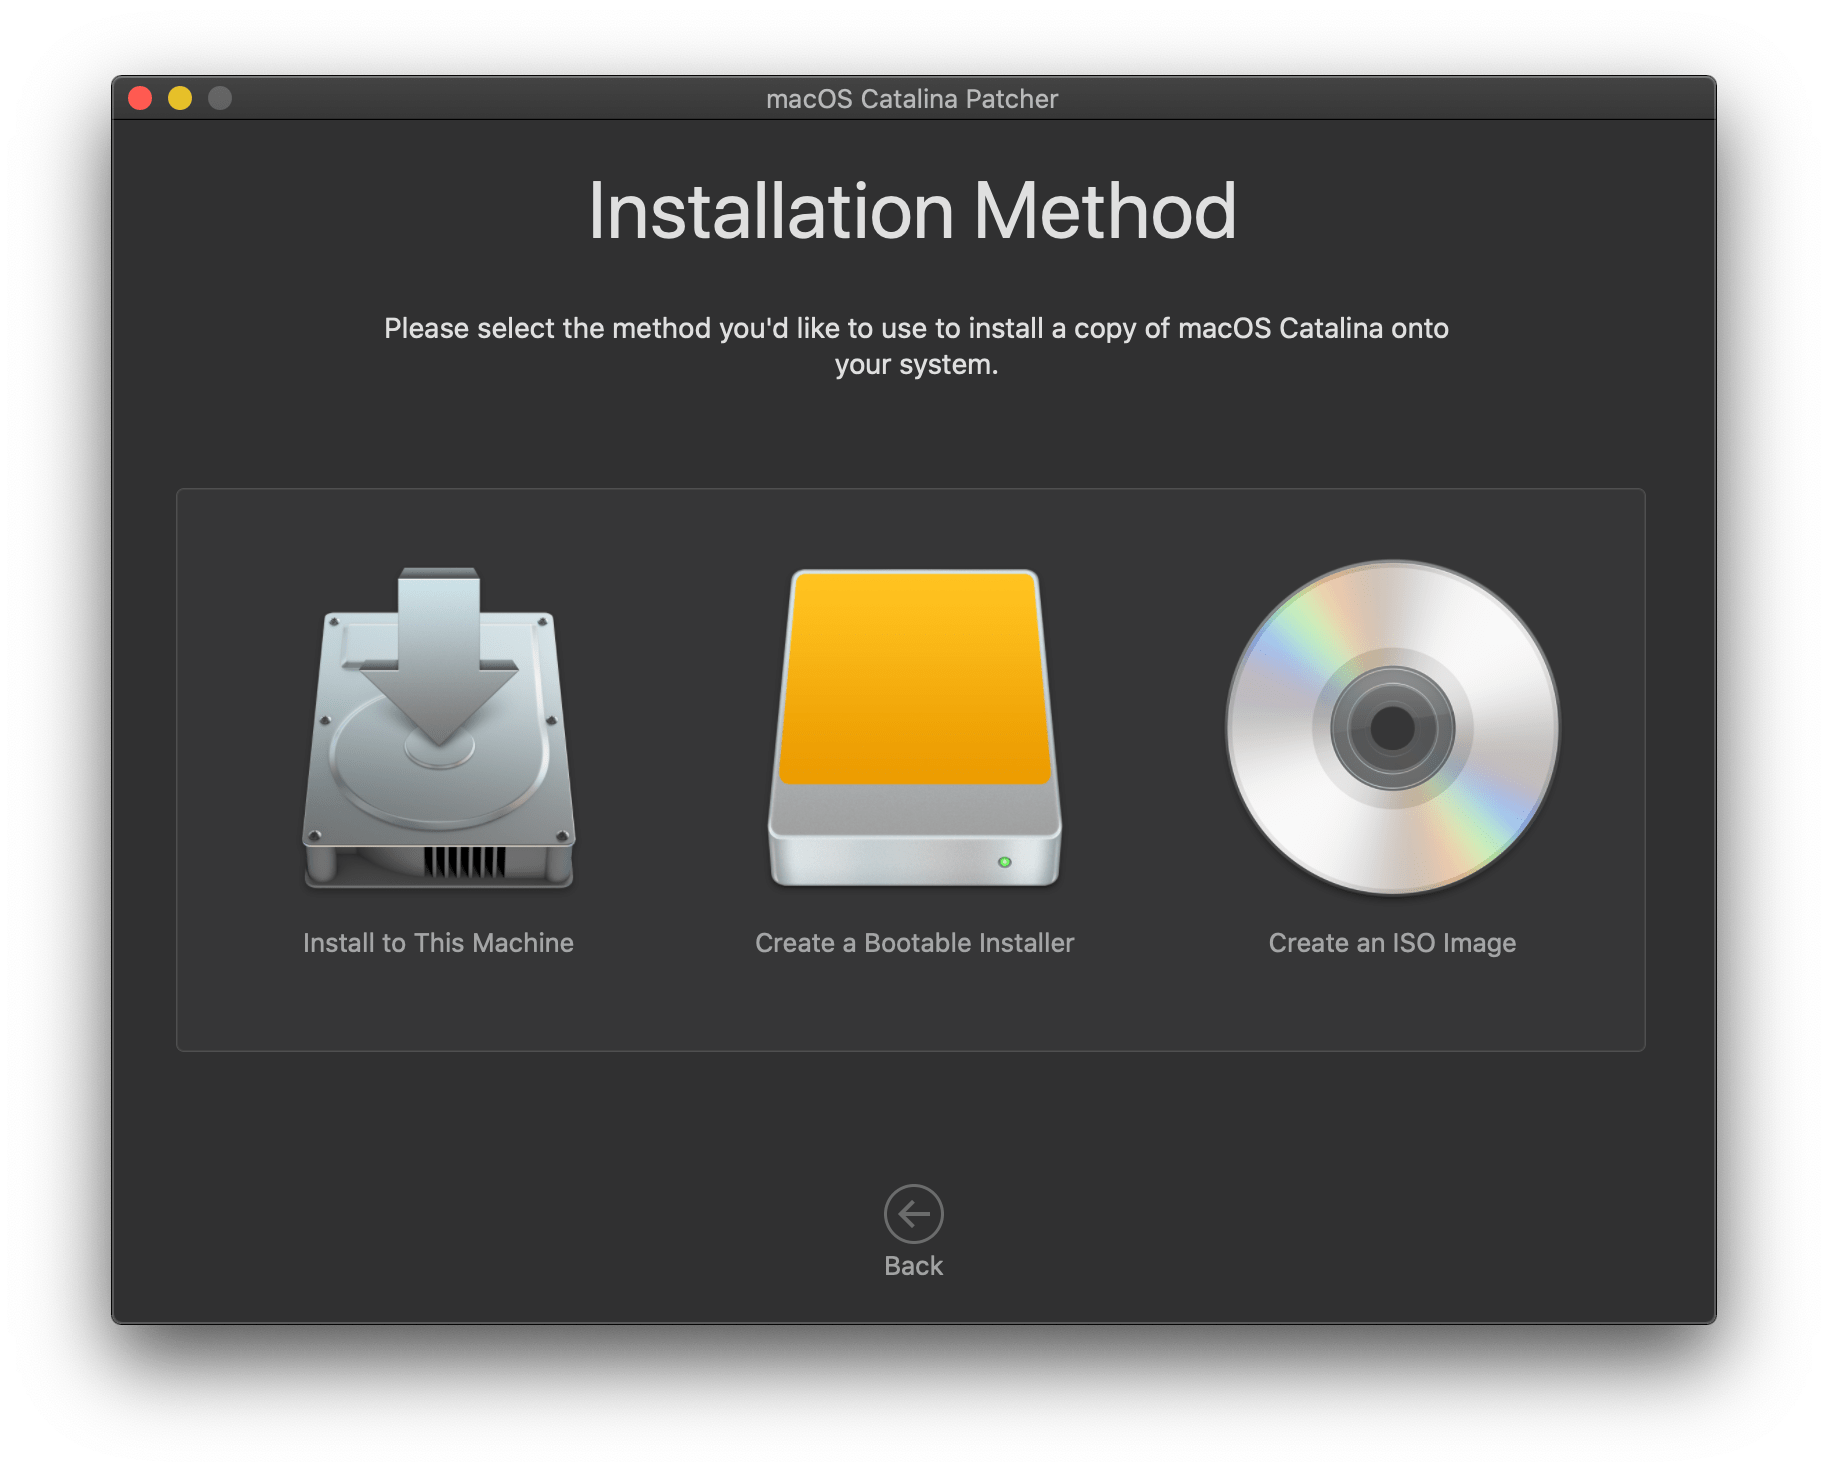 How to download a complete macOS Catalina installer app